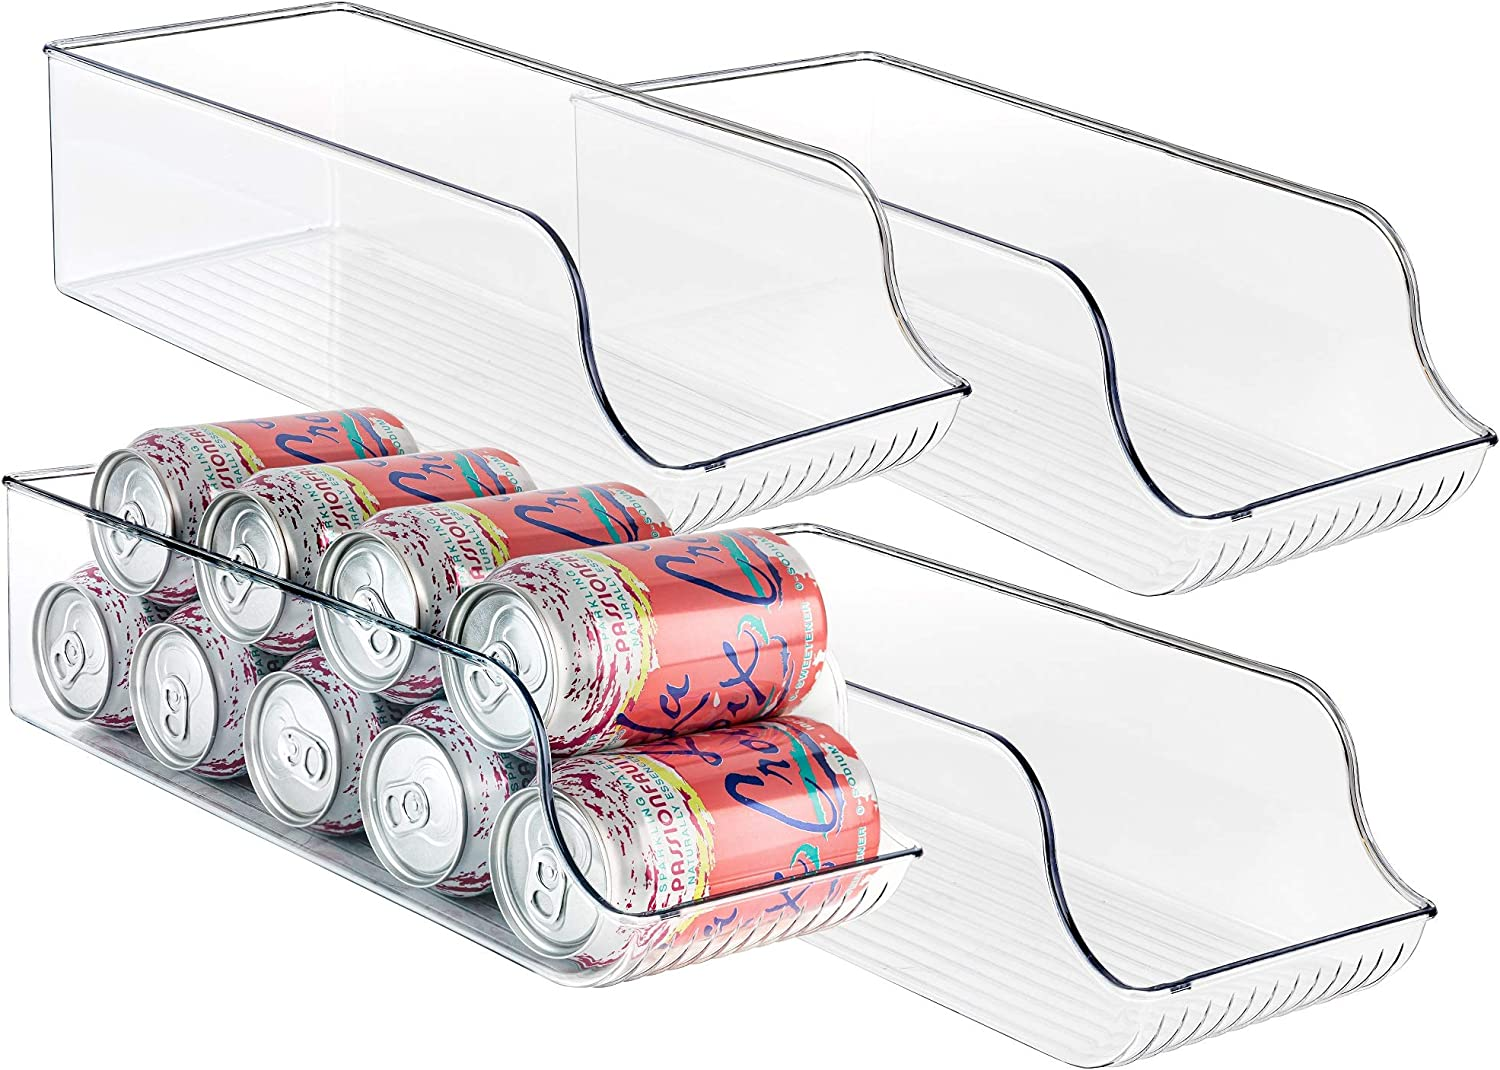 Homeries Can Drink Holder Storage & Dispenser Bin for Refrigerator, Freezer, Countertop, Cabinets & Pantry - Pack of 4 - Holds Up To 9 Cans (7oz) - Beverage & Canned Food Organizer